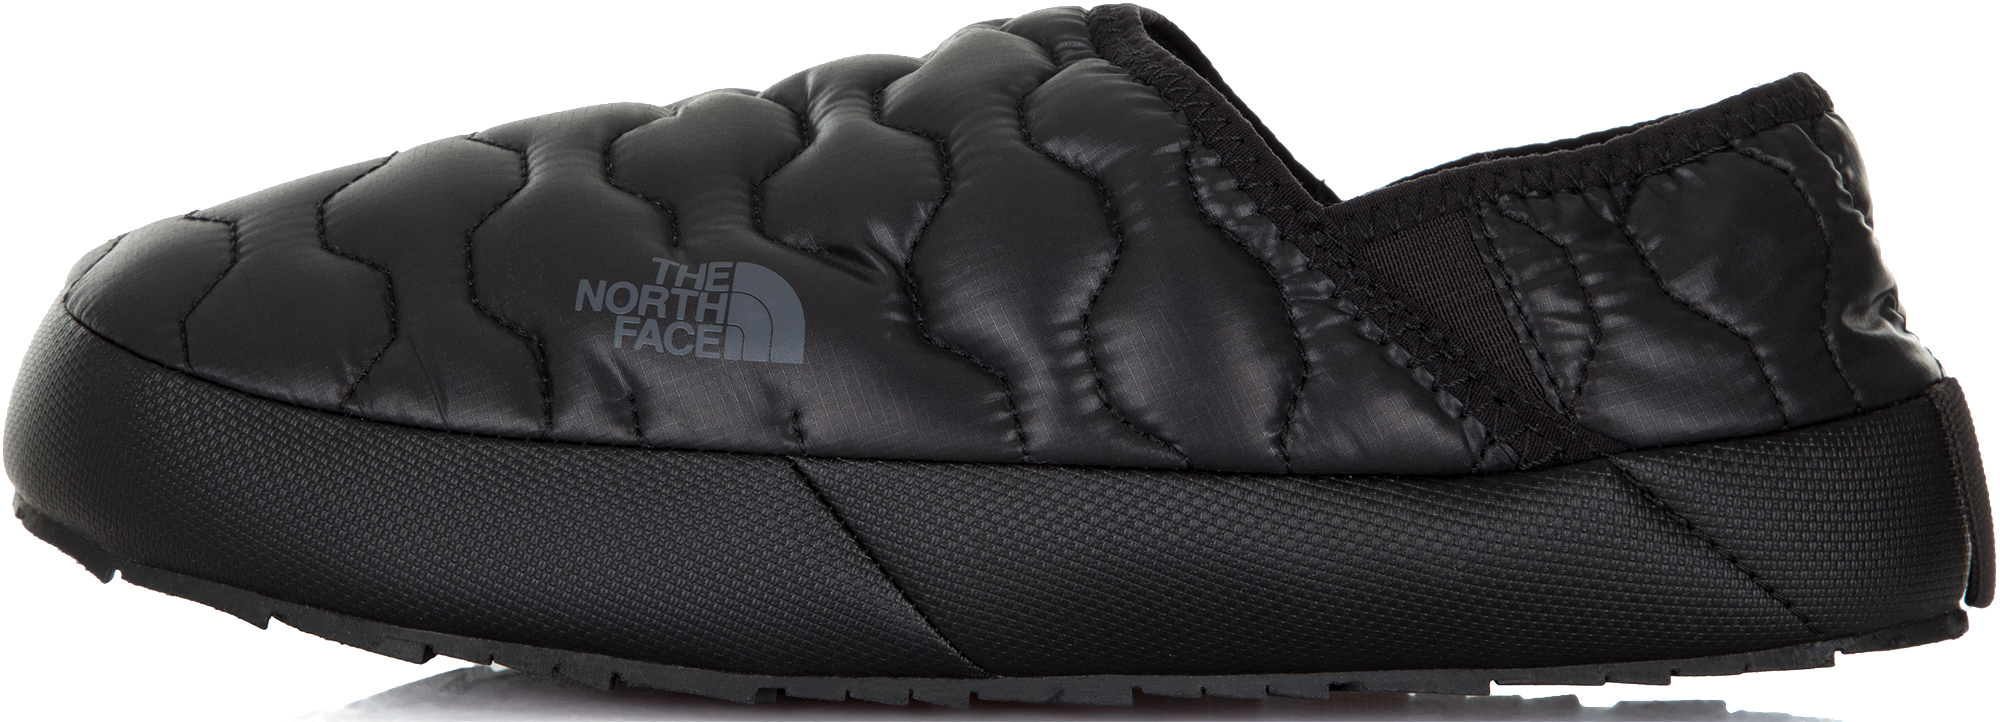 The North Face Полуботинки утепленные мужские The North Face ThermoBall Traction Mule IV, размер 43 жилет the north face the north face thermoball